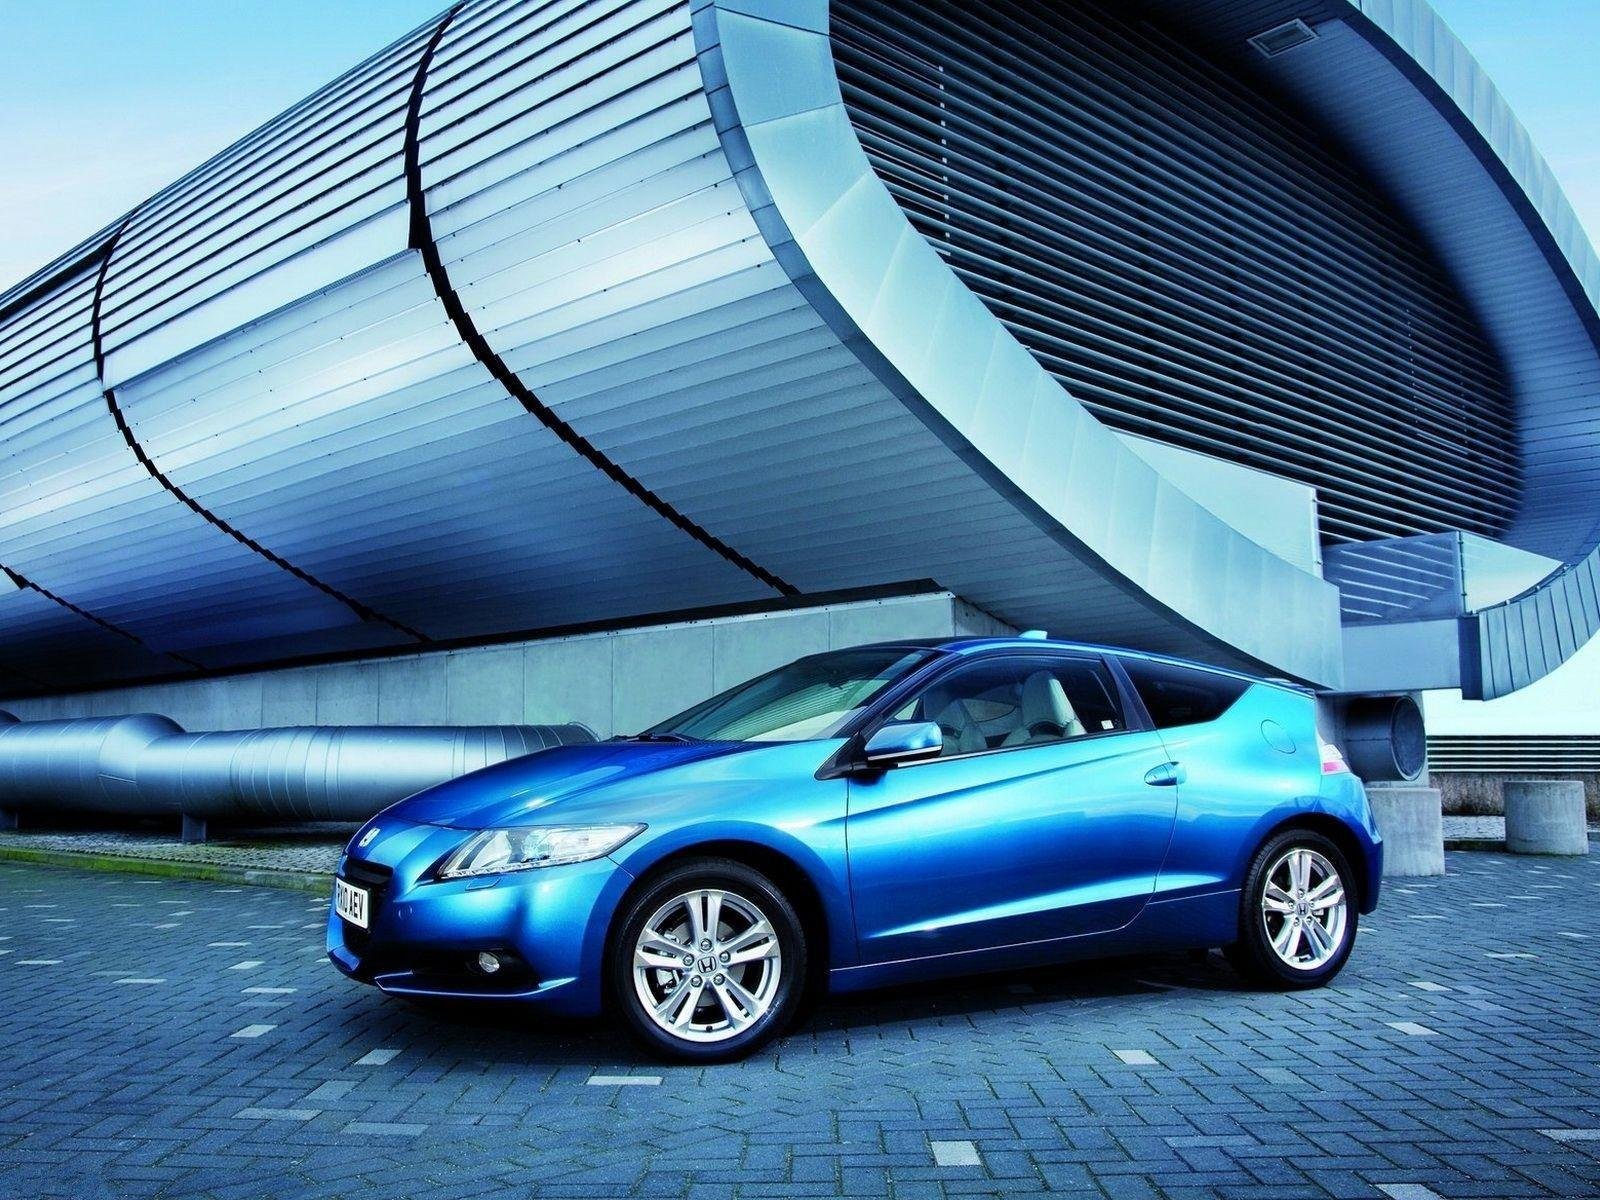 Blue Car Hd Wallpapers